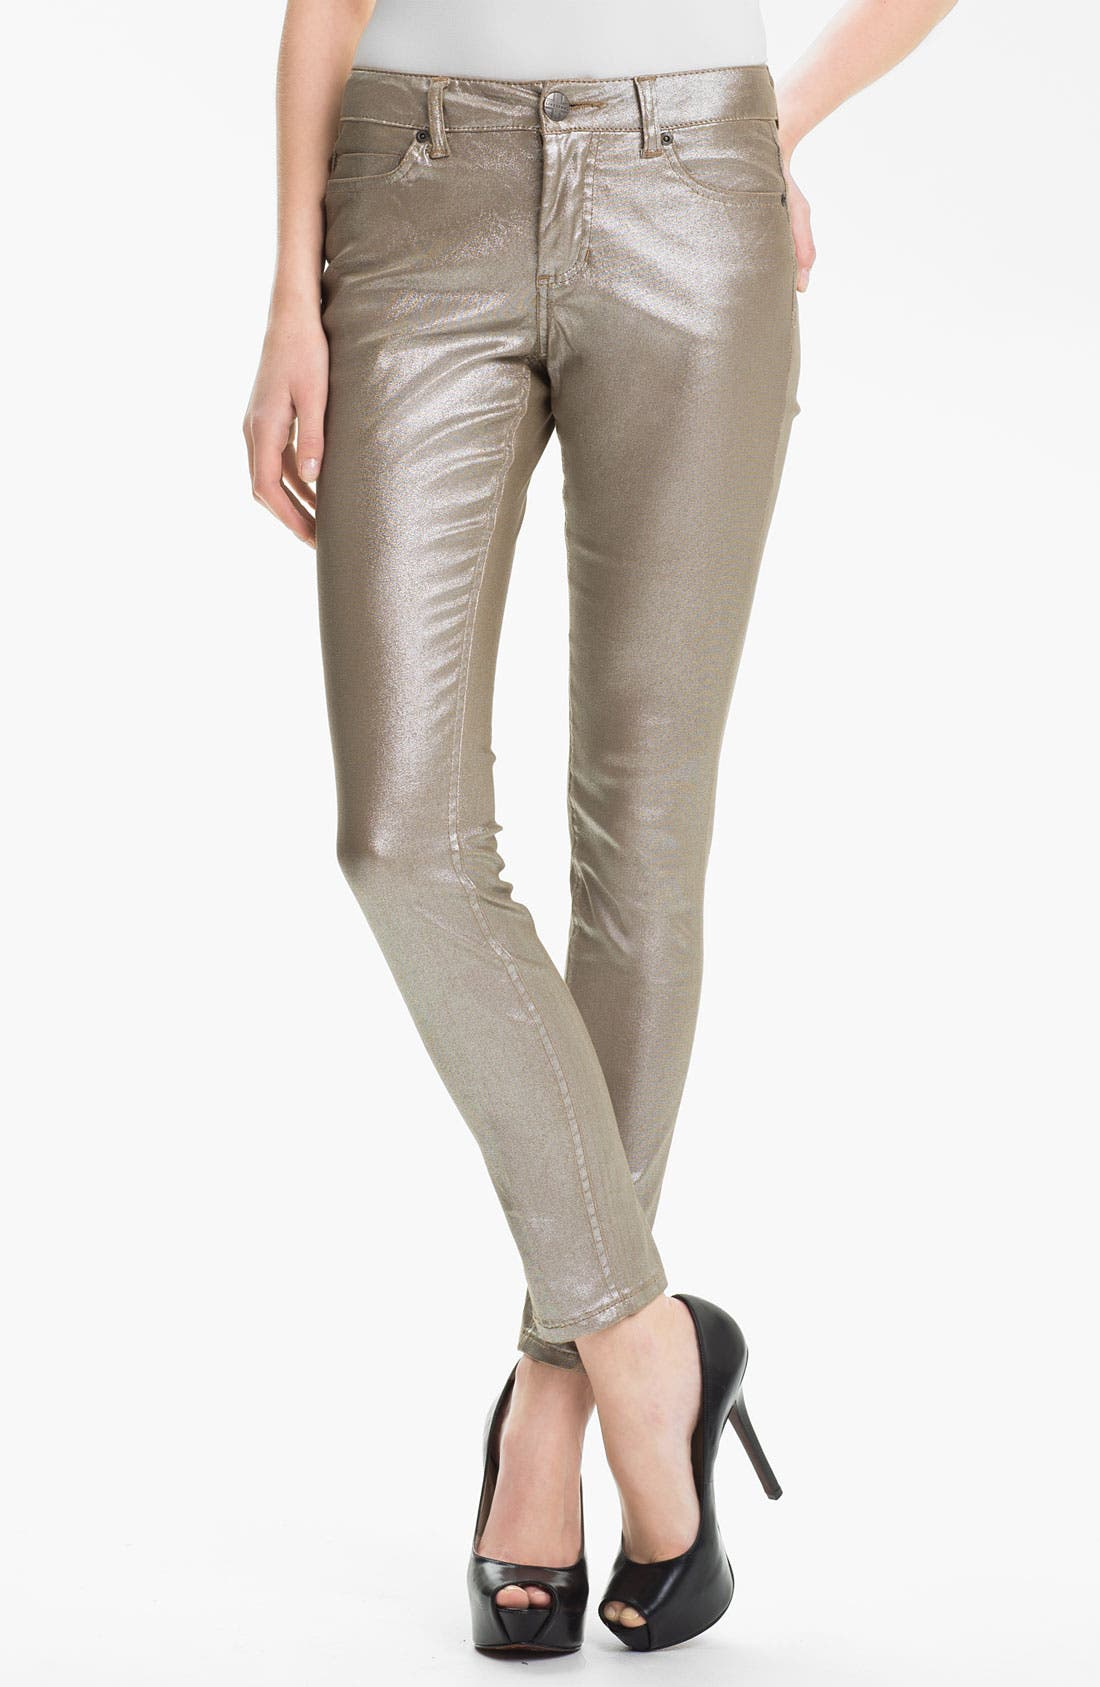 Alternate Image 1 Selected - Liverpool Jeans Company 'Abby' Metallic Coated Skinny Jeans (Petite) (Online Exclusive)